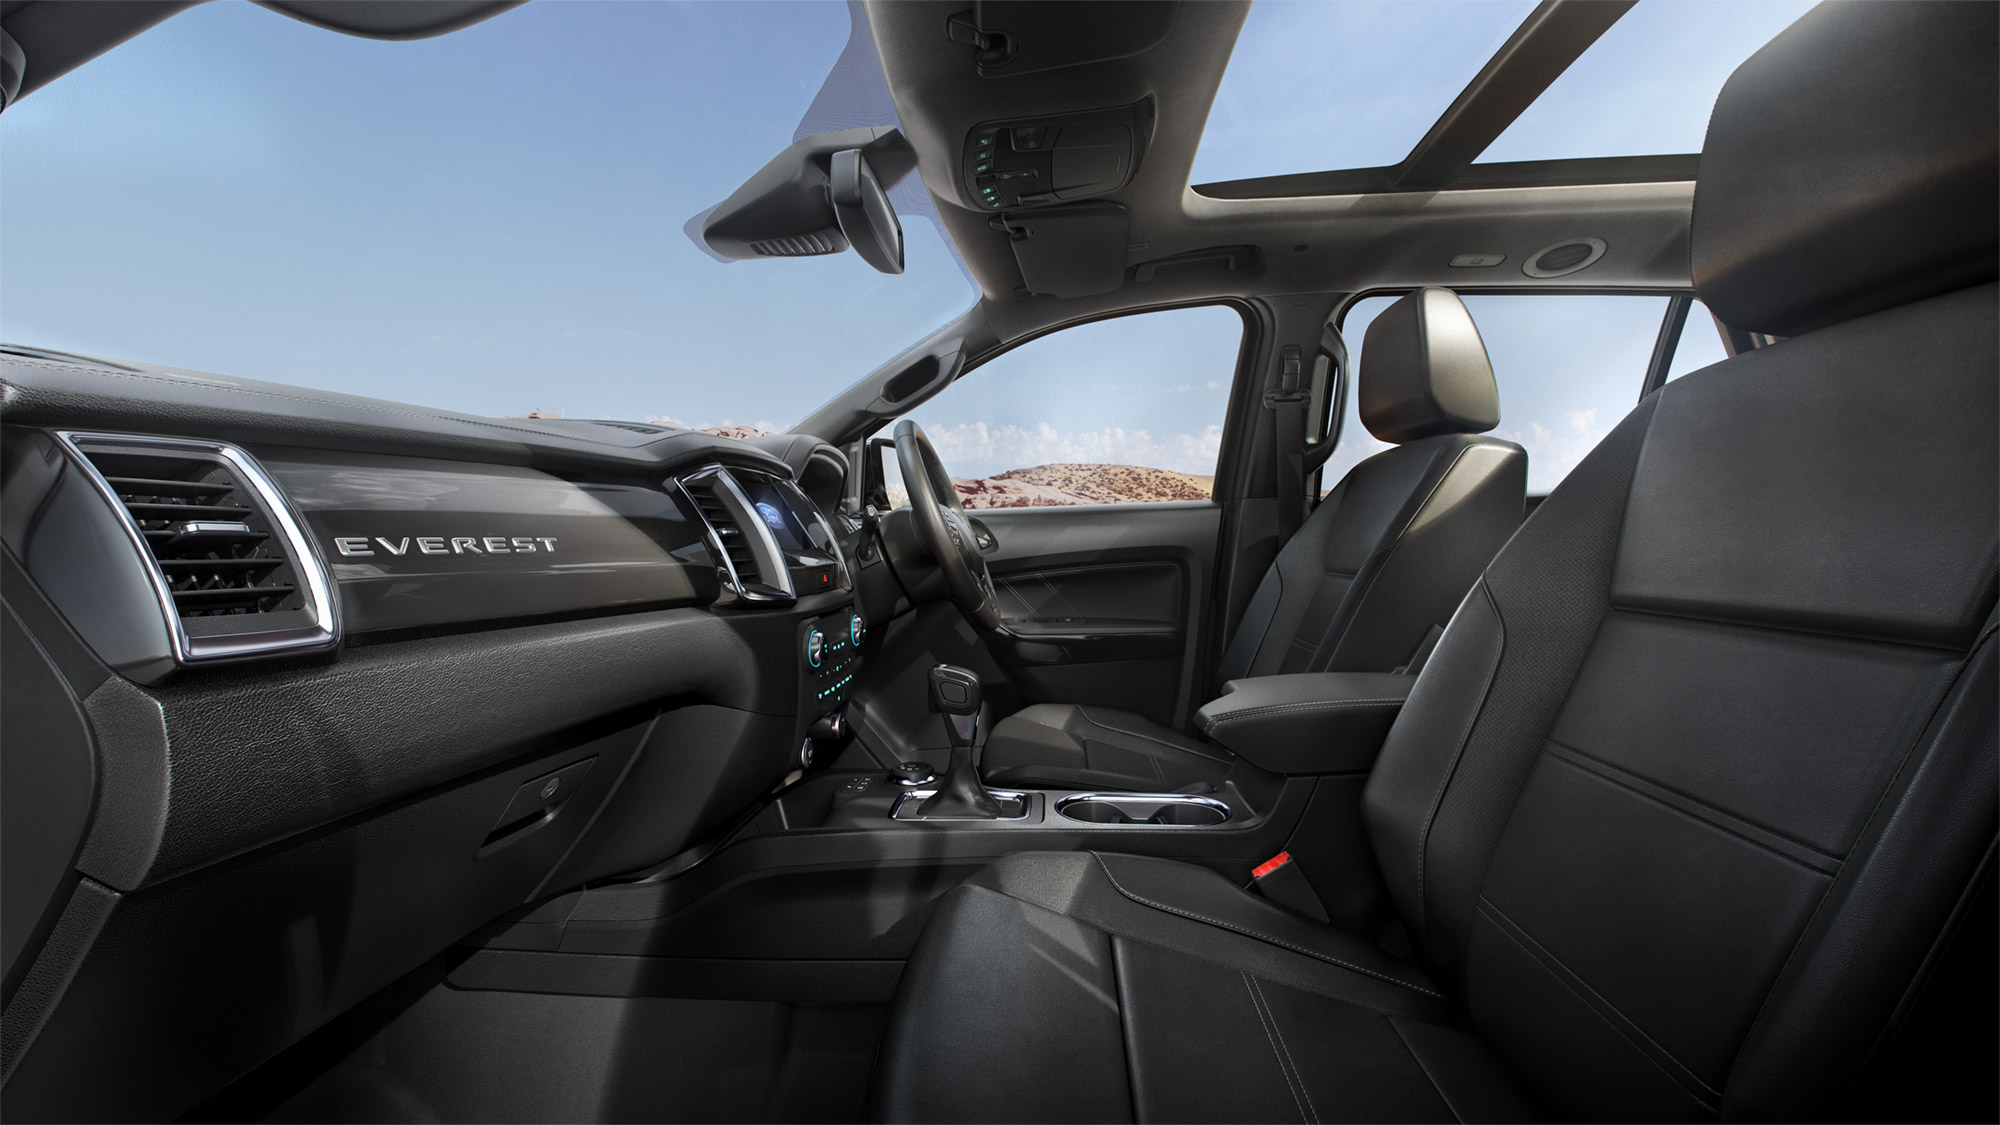 AT_Ford-Everest_18_interior_IMG_02